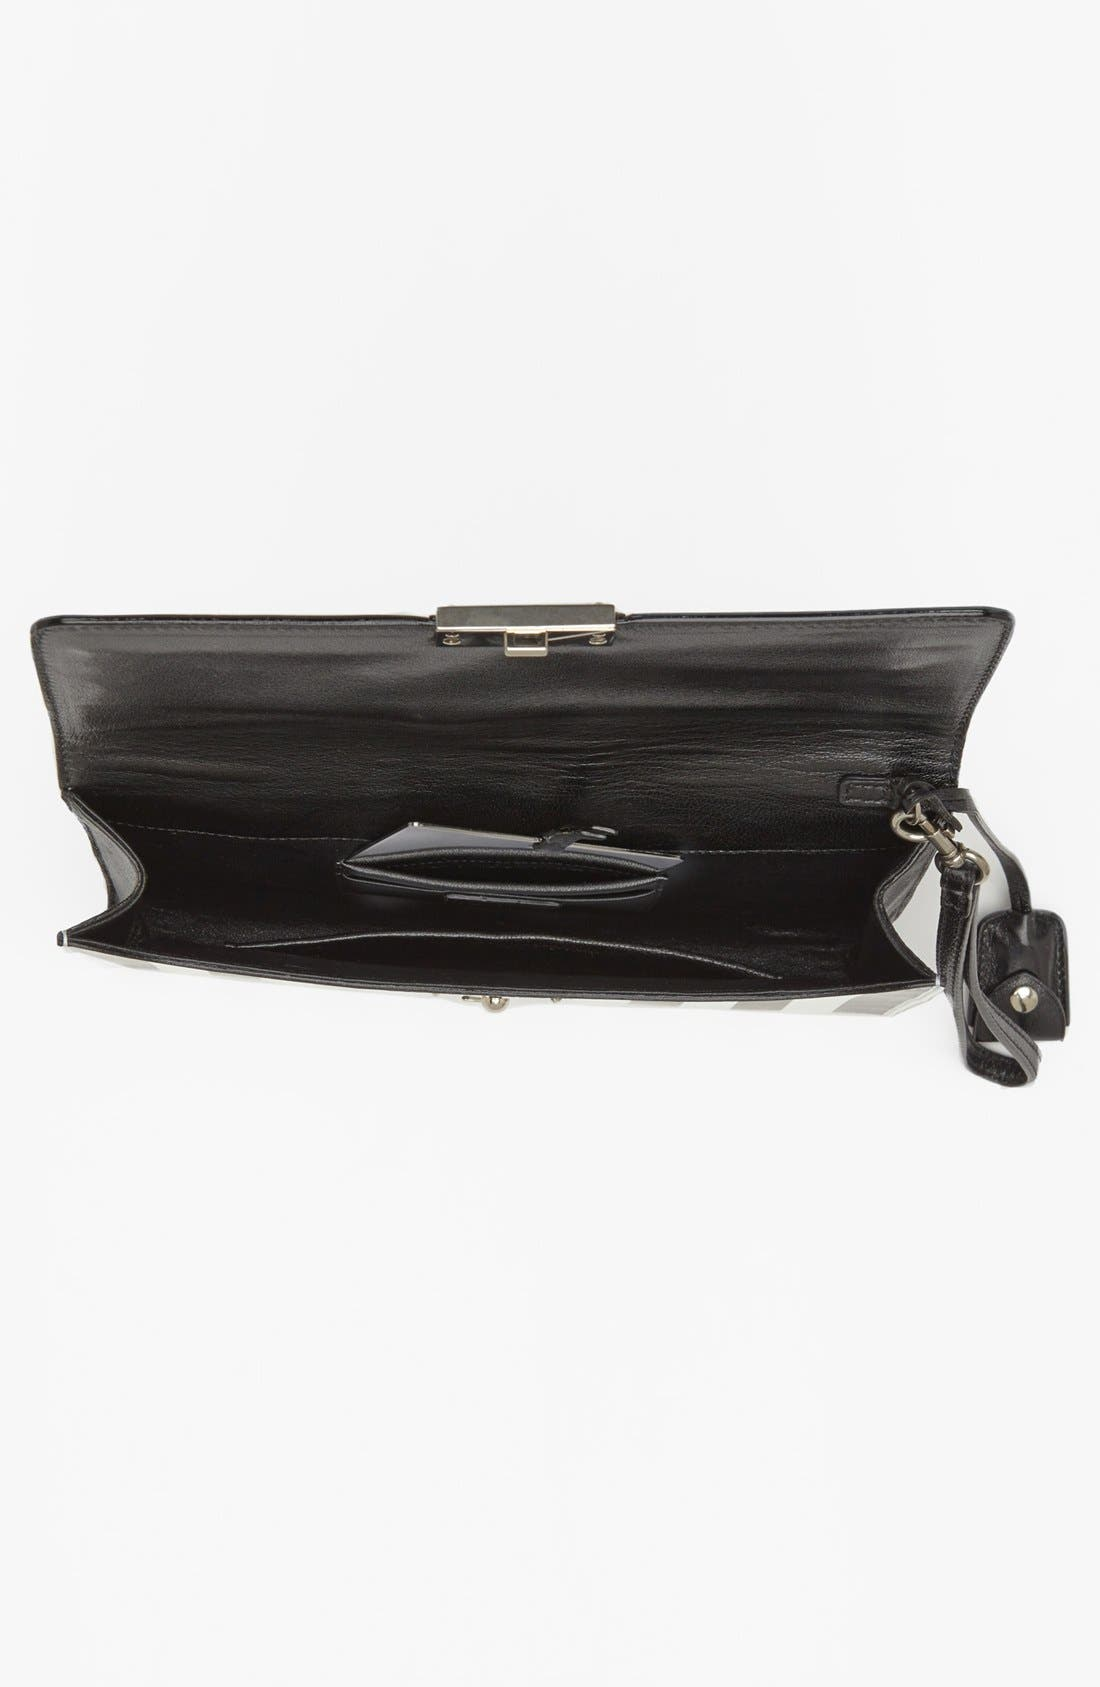 Alternate Image 3  - MARC JACOBS 'Prisoners Isobel' Leather Clutch